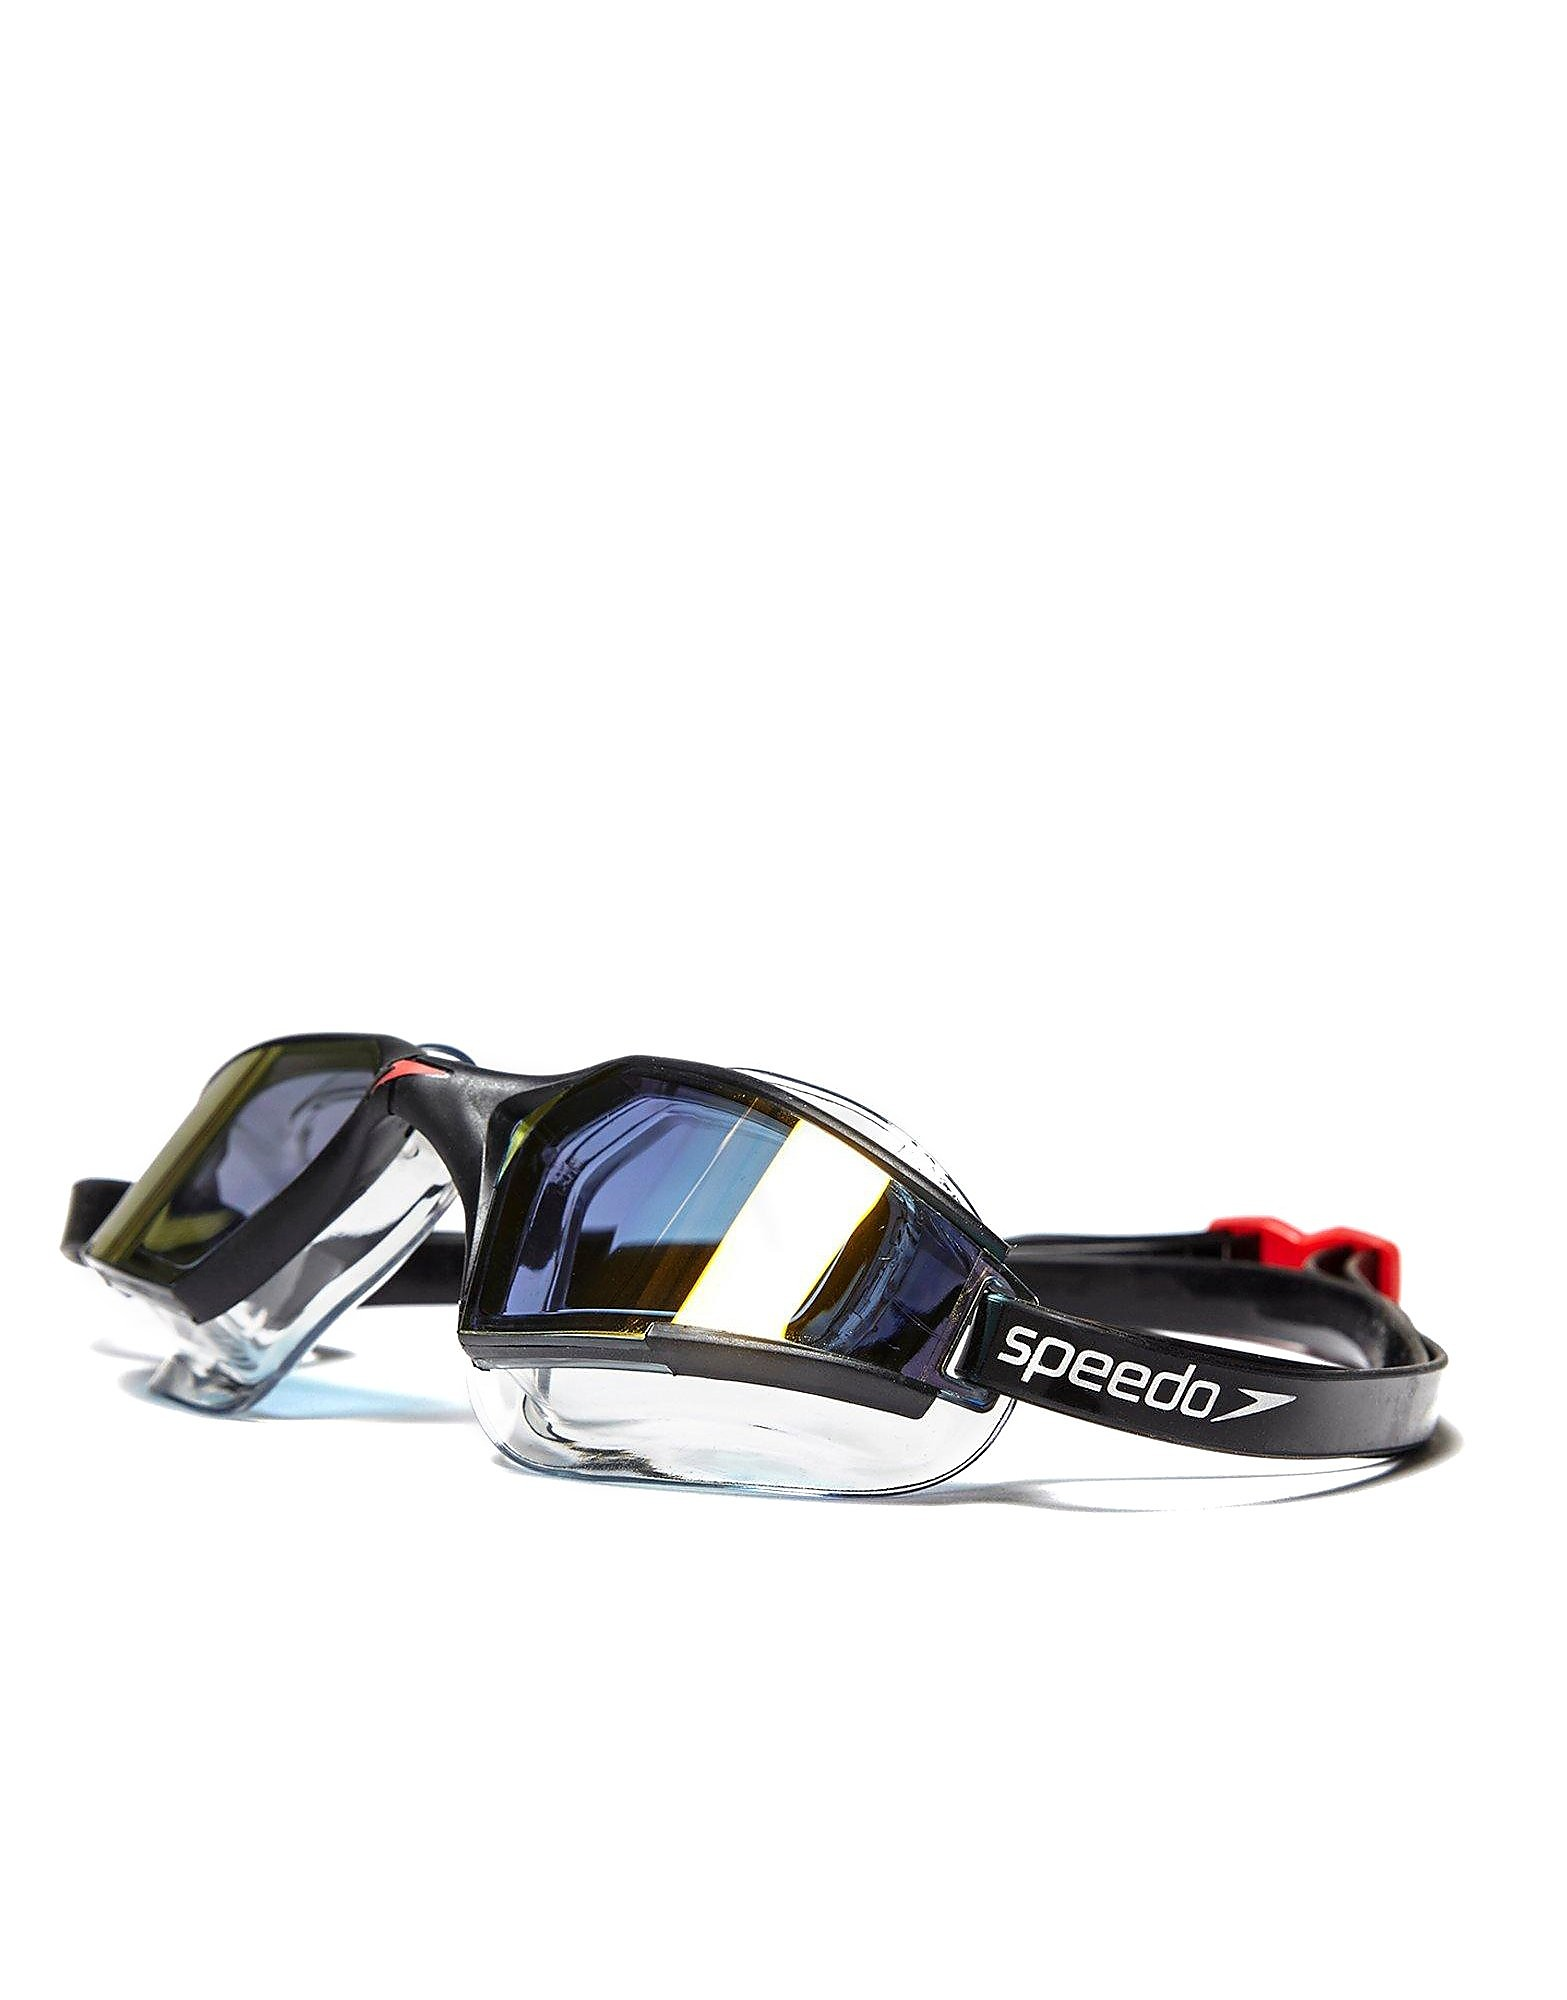 Speedo Aquapulse Max Mirror-duikbril